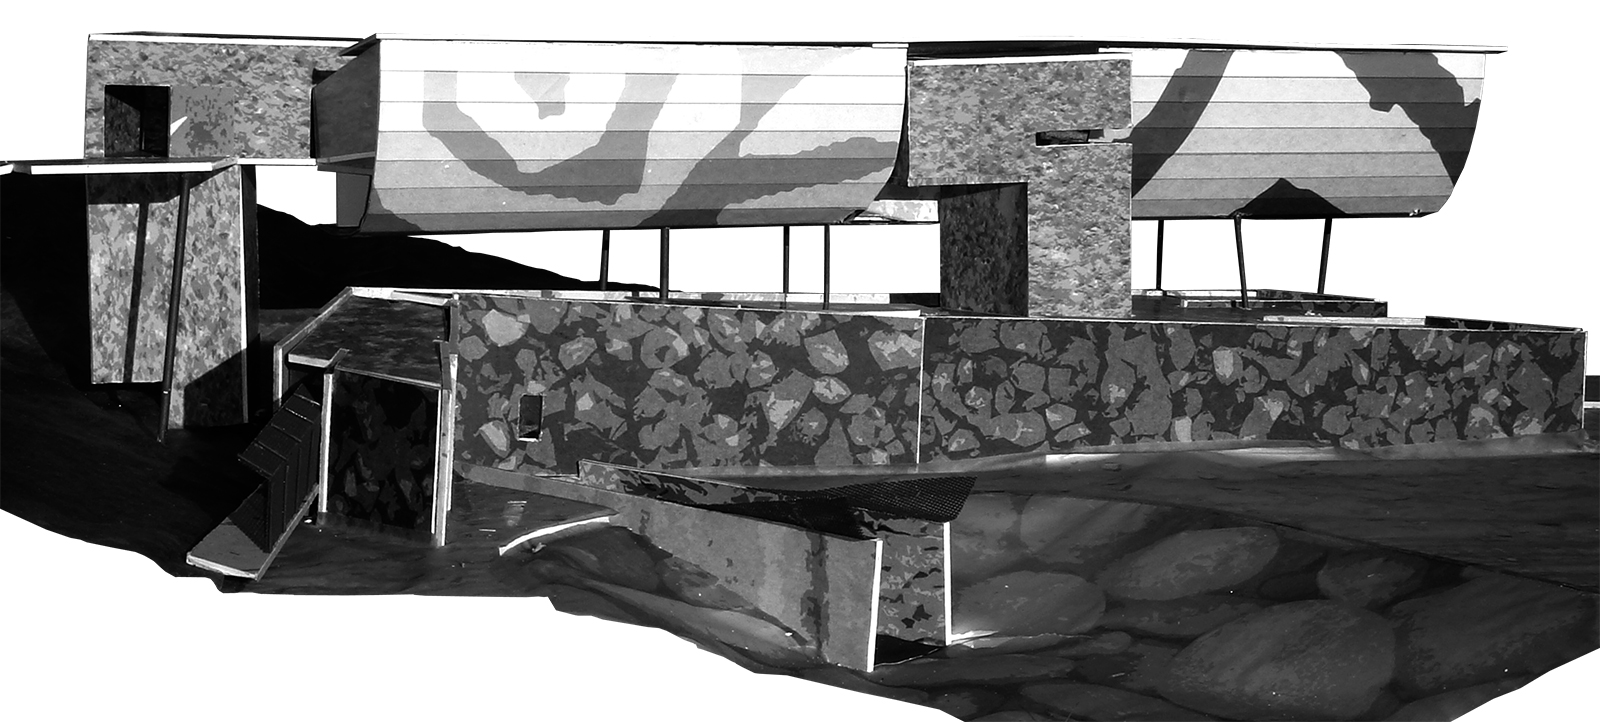 Study model of a floating RACA gallery mass floating above the existing visitor center with a skin made of shifting symbols